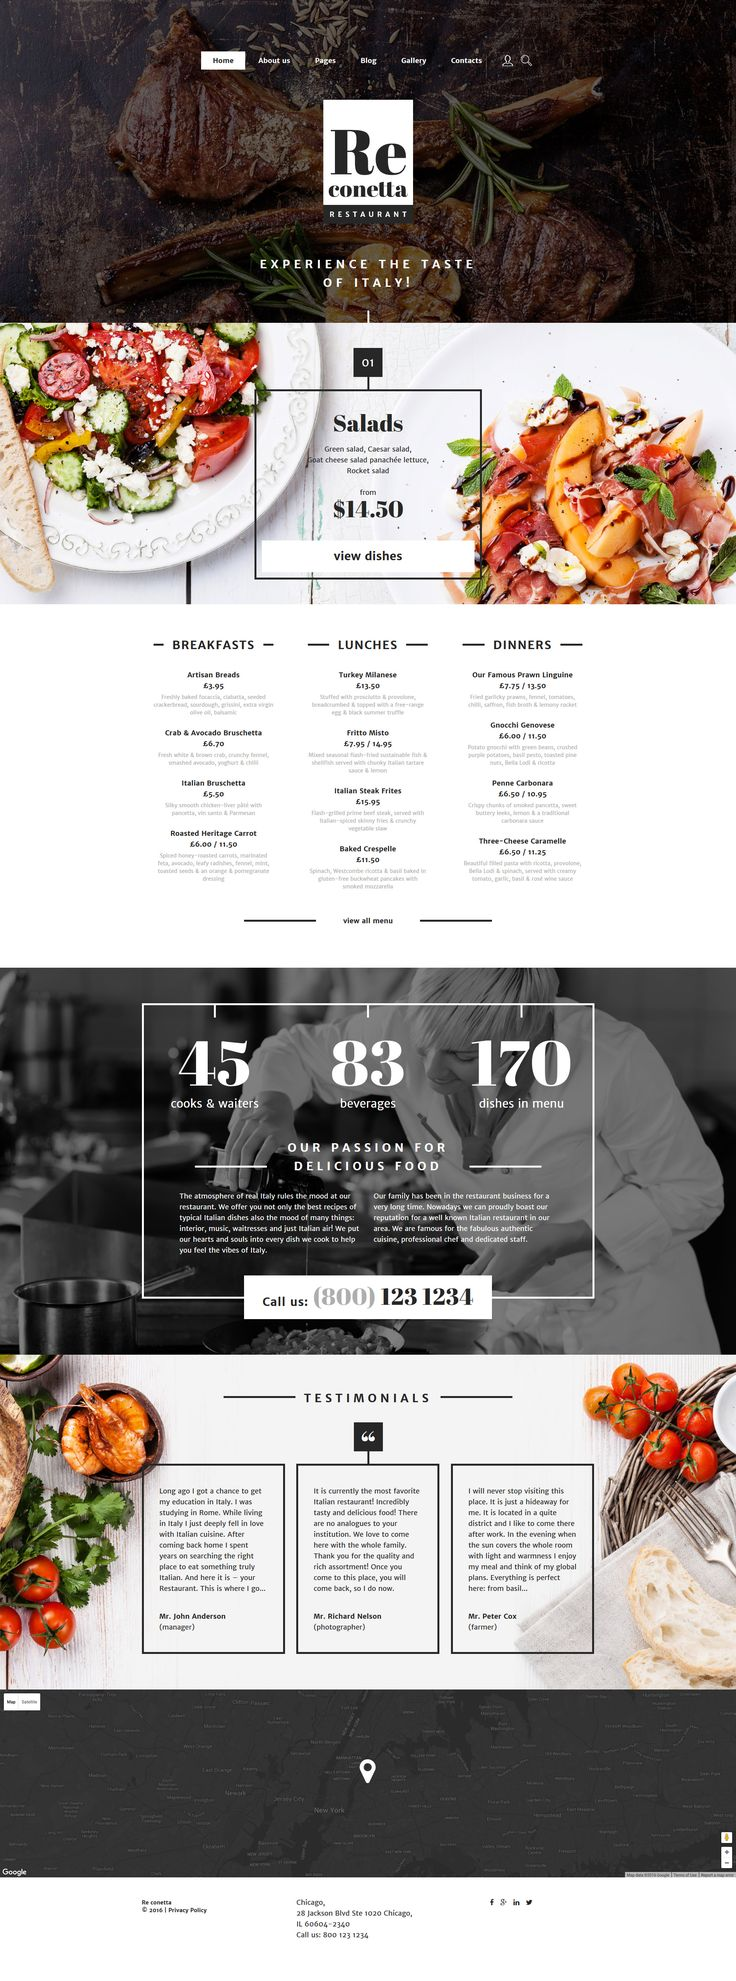 Cafe And Restaurant Joomla Theme http://www.templatemonster.com/joomla-templates/re-conetta-joomla-template-58322.html